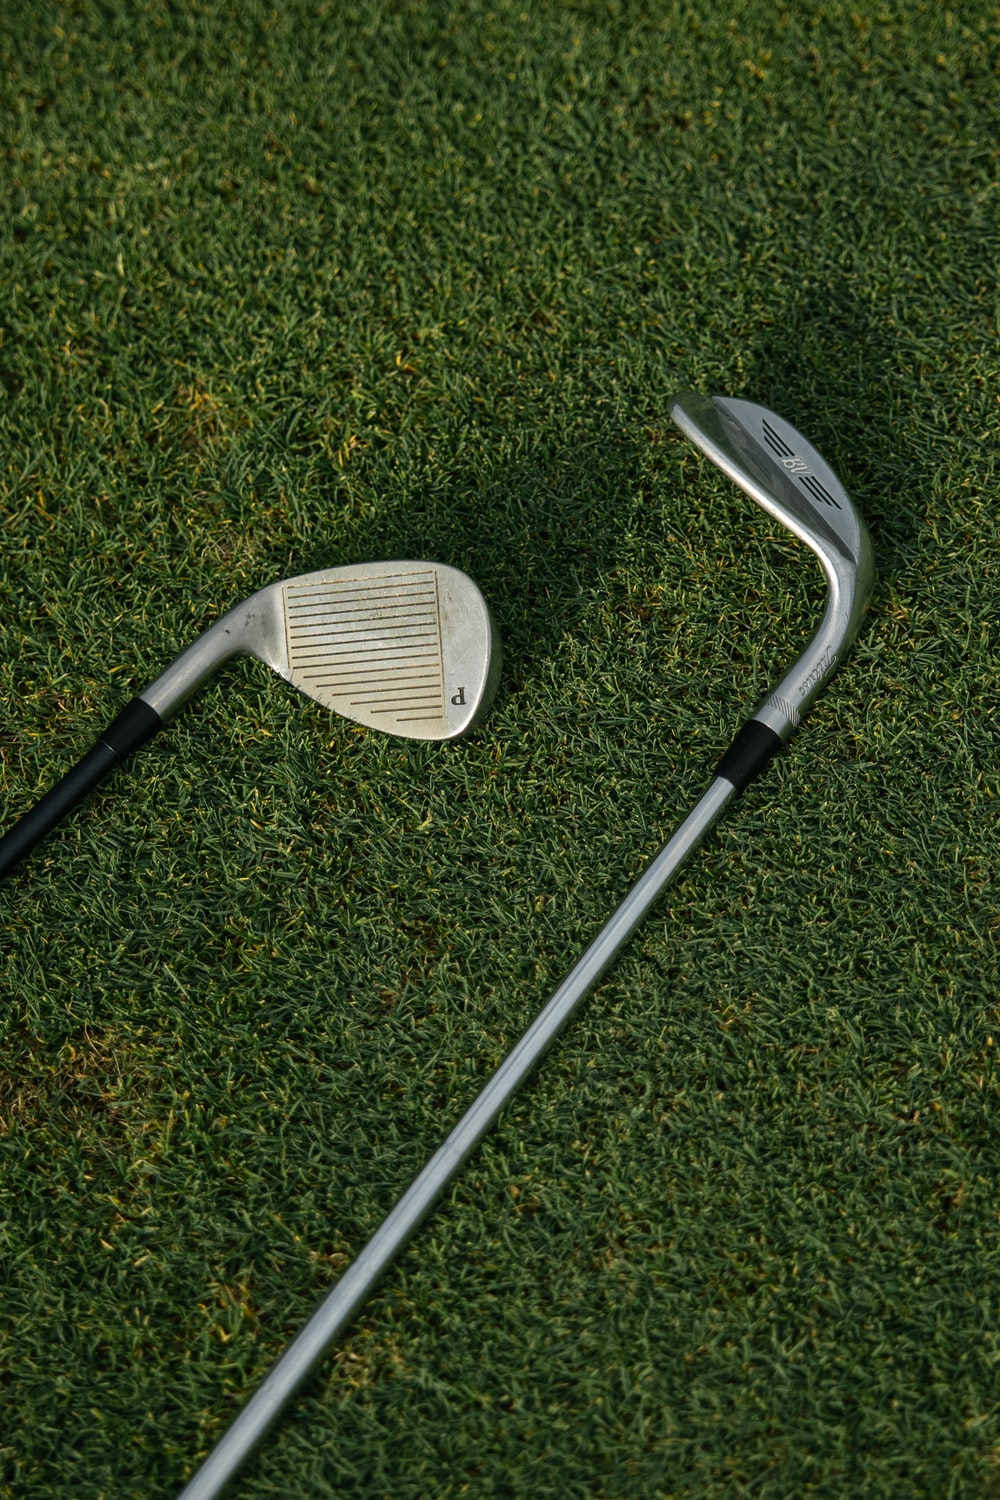 white and black golf club on green grass